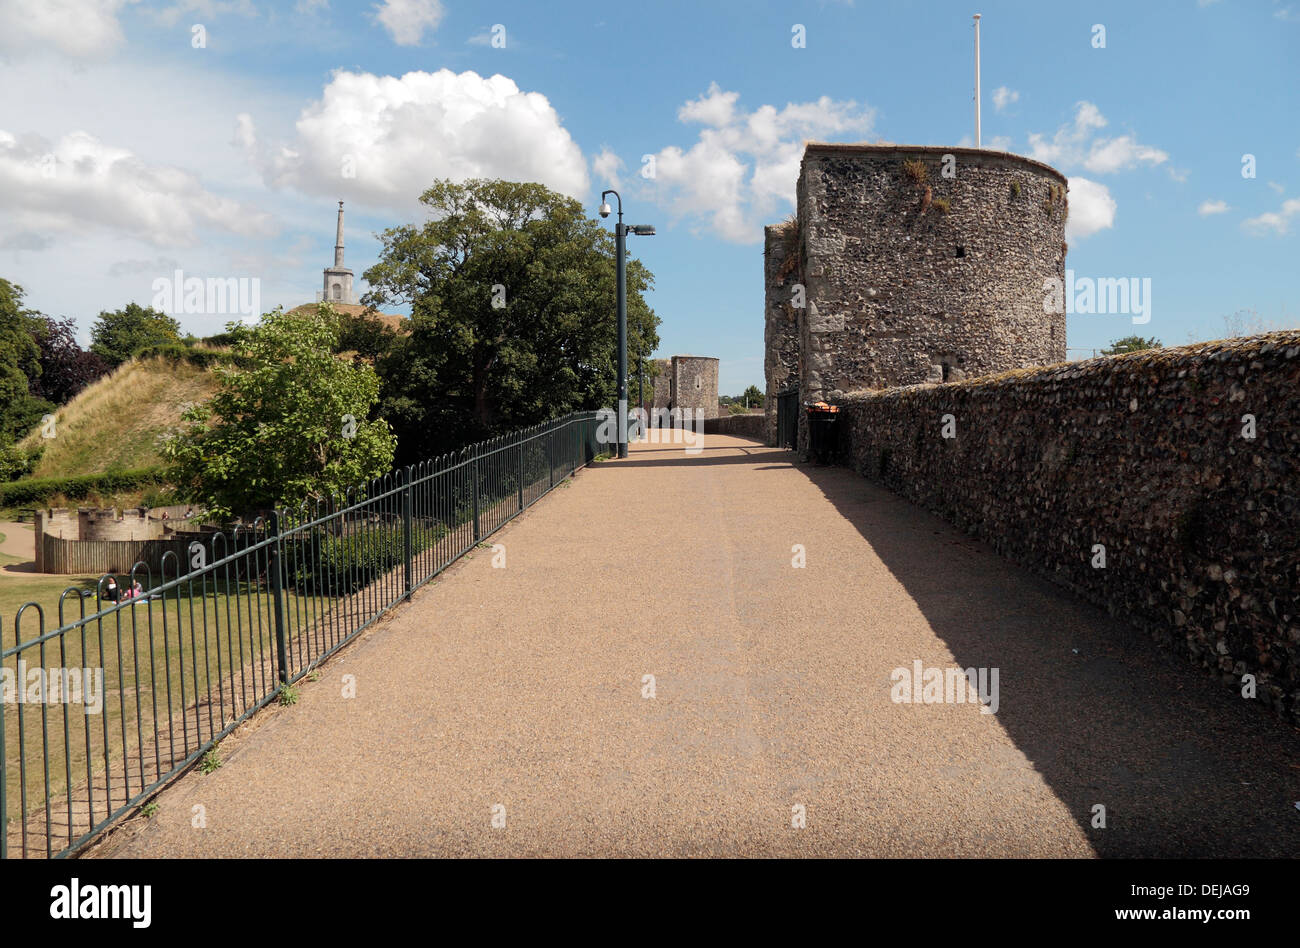 Walkway along the historic city walls which encircle the centre of Canterbury, Kent, UK. - Stock Image